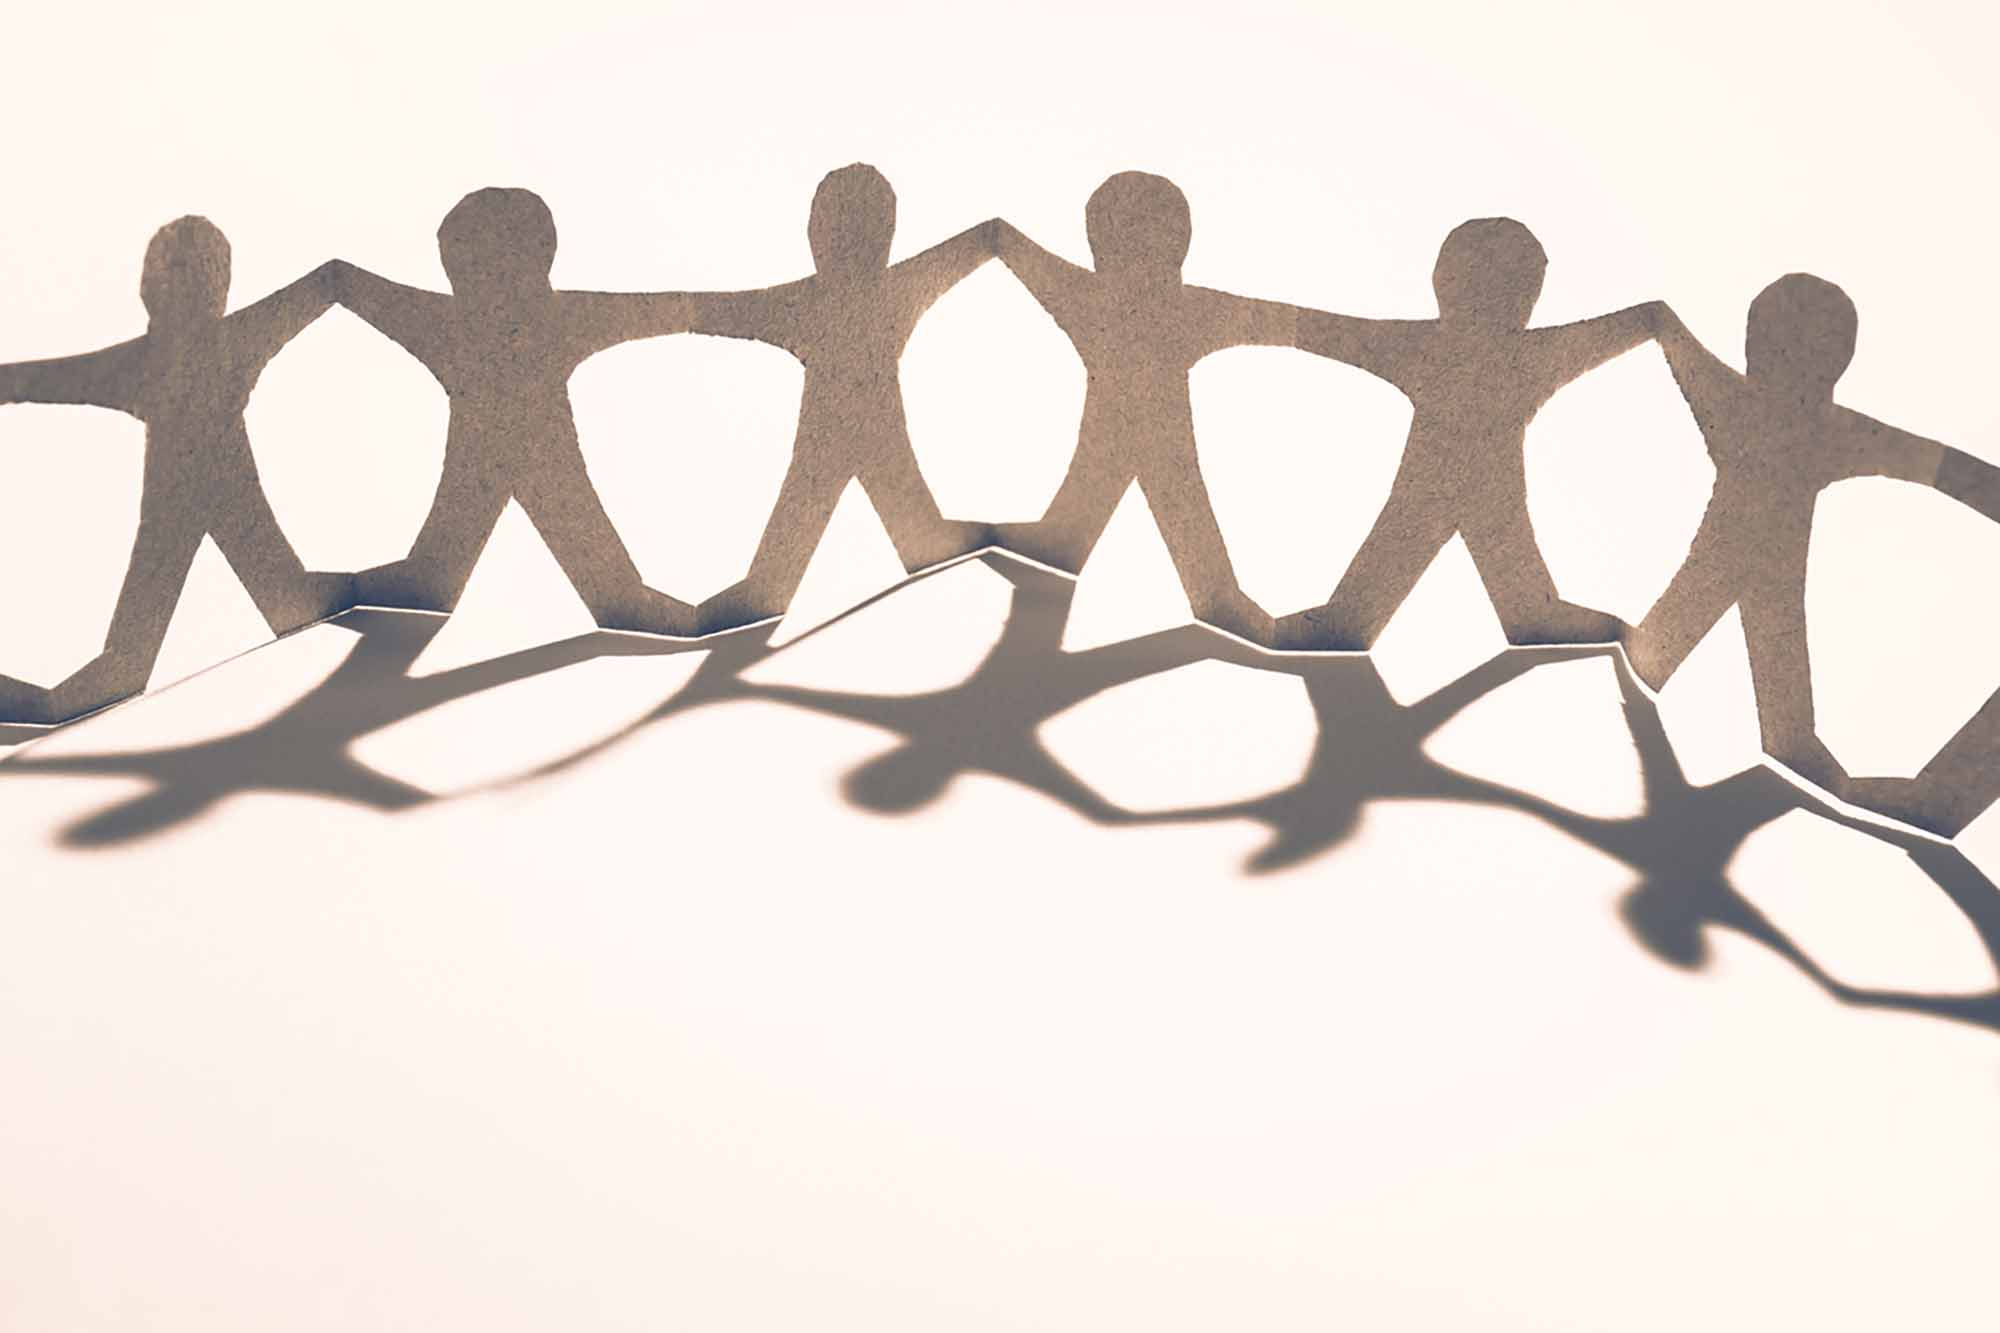 Figures linked & supporting each other